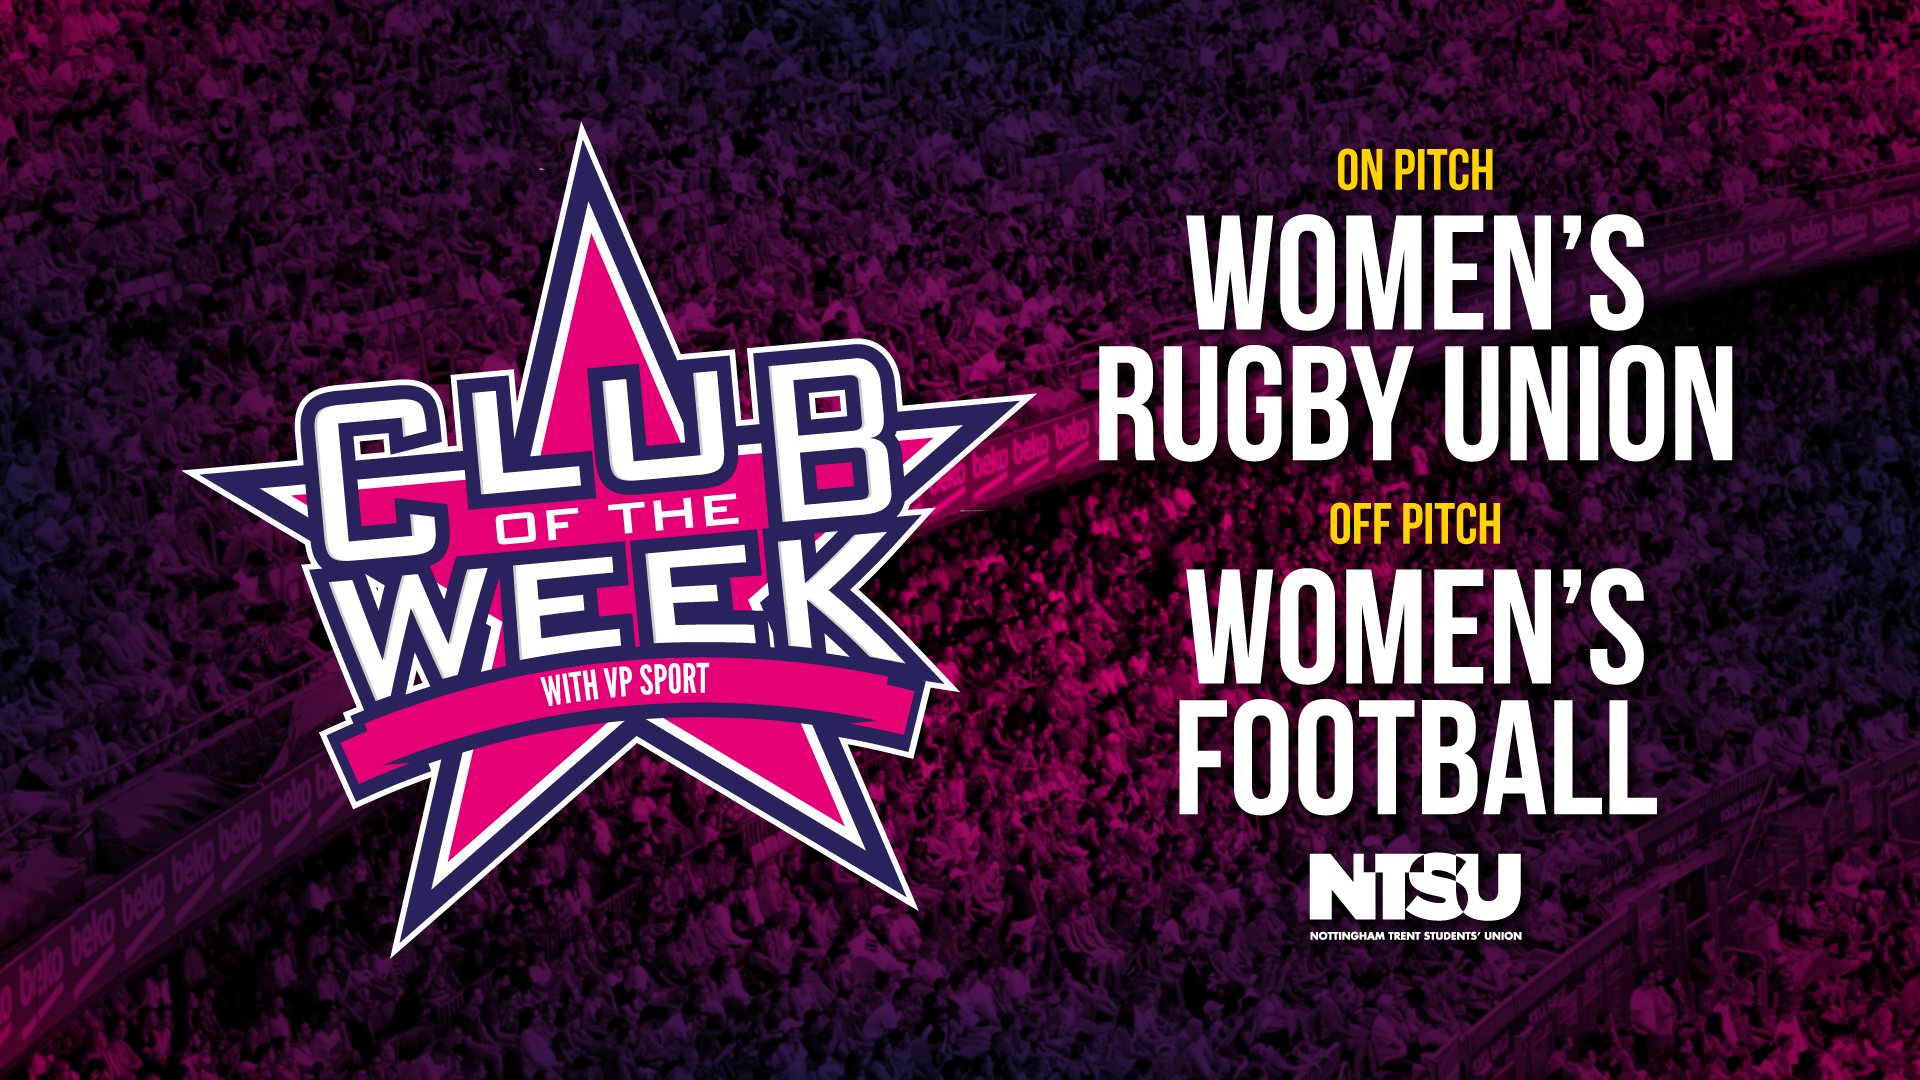 On Pitch Women's Rugby Union Off Pitch Women's Football